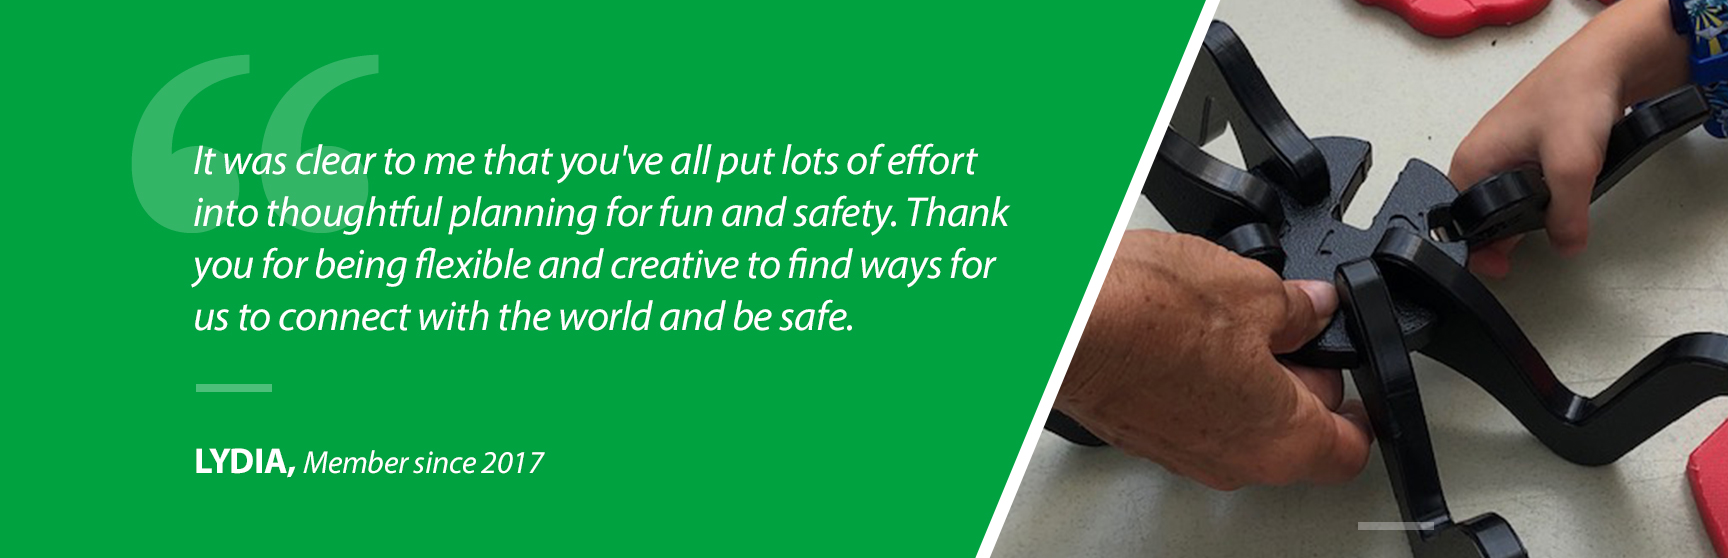 """""""It was clear to me that you've all put lots of effort into thoughtful planning for fun and safety. Thank you for being flexible and creative to find ways for us to connect with the world and be safe."""" - Lydia, Member since 2017"""